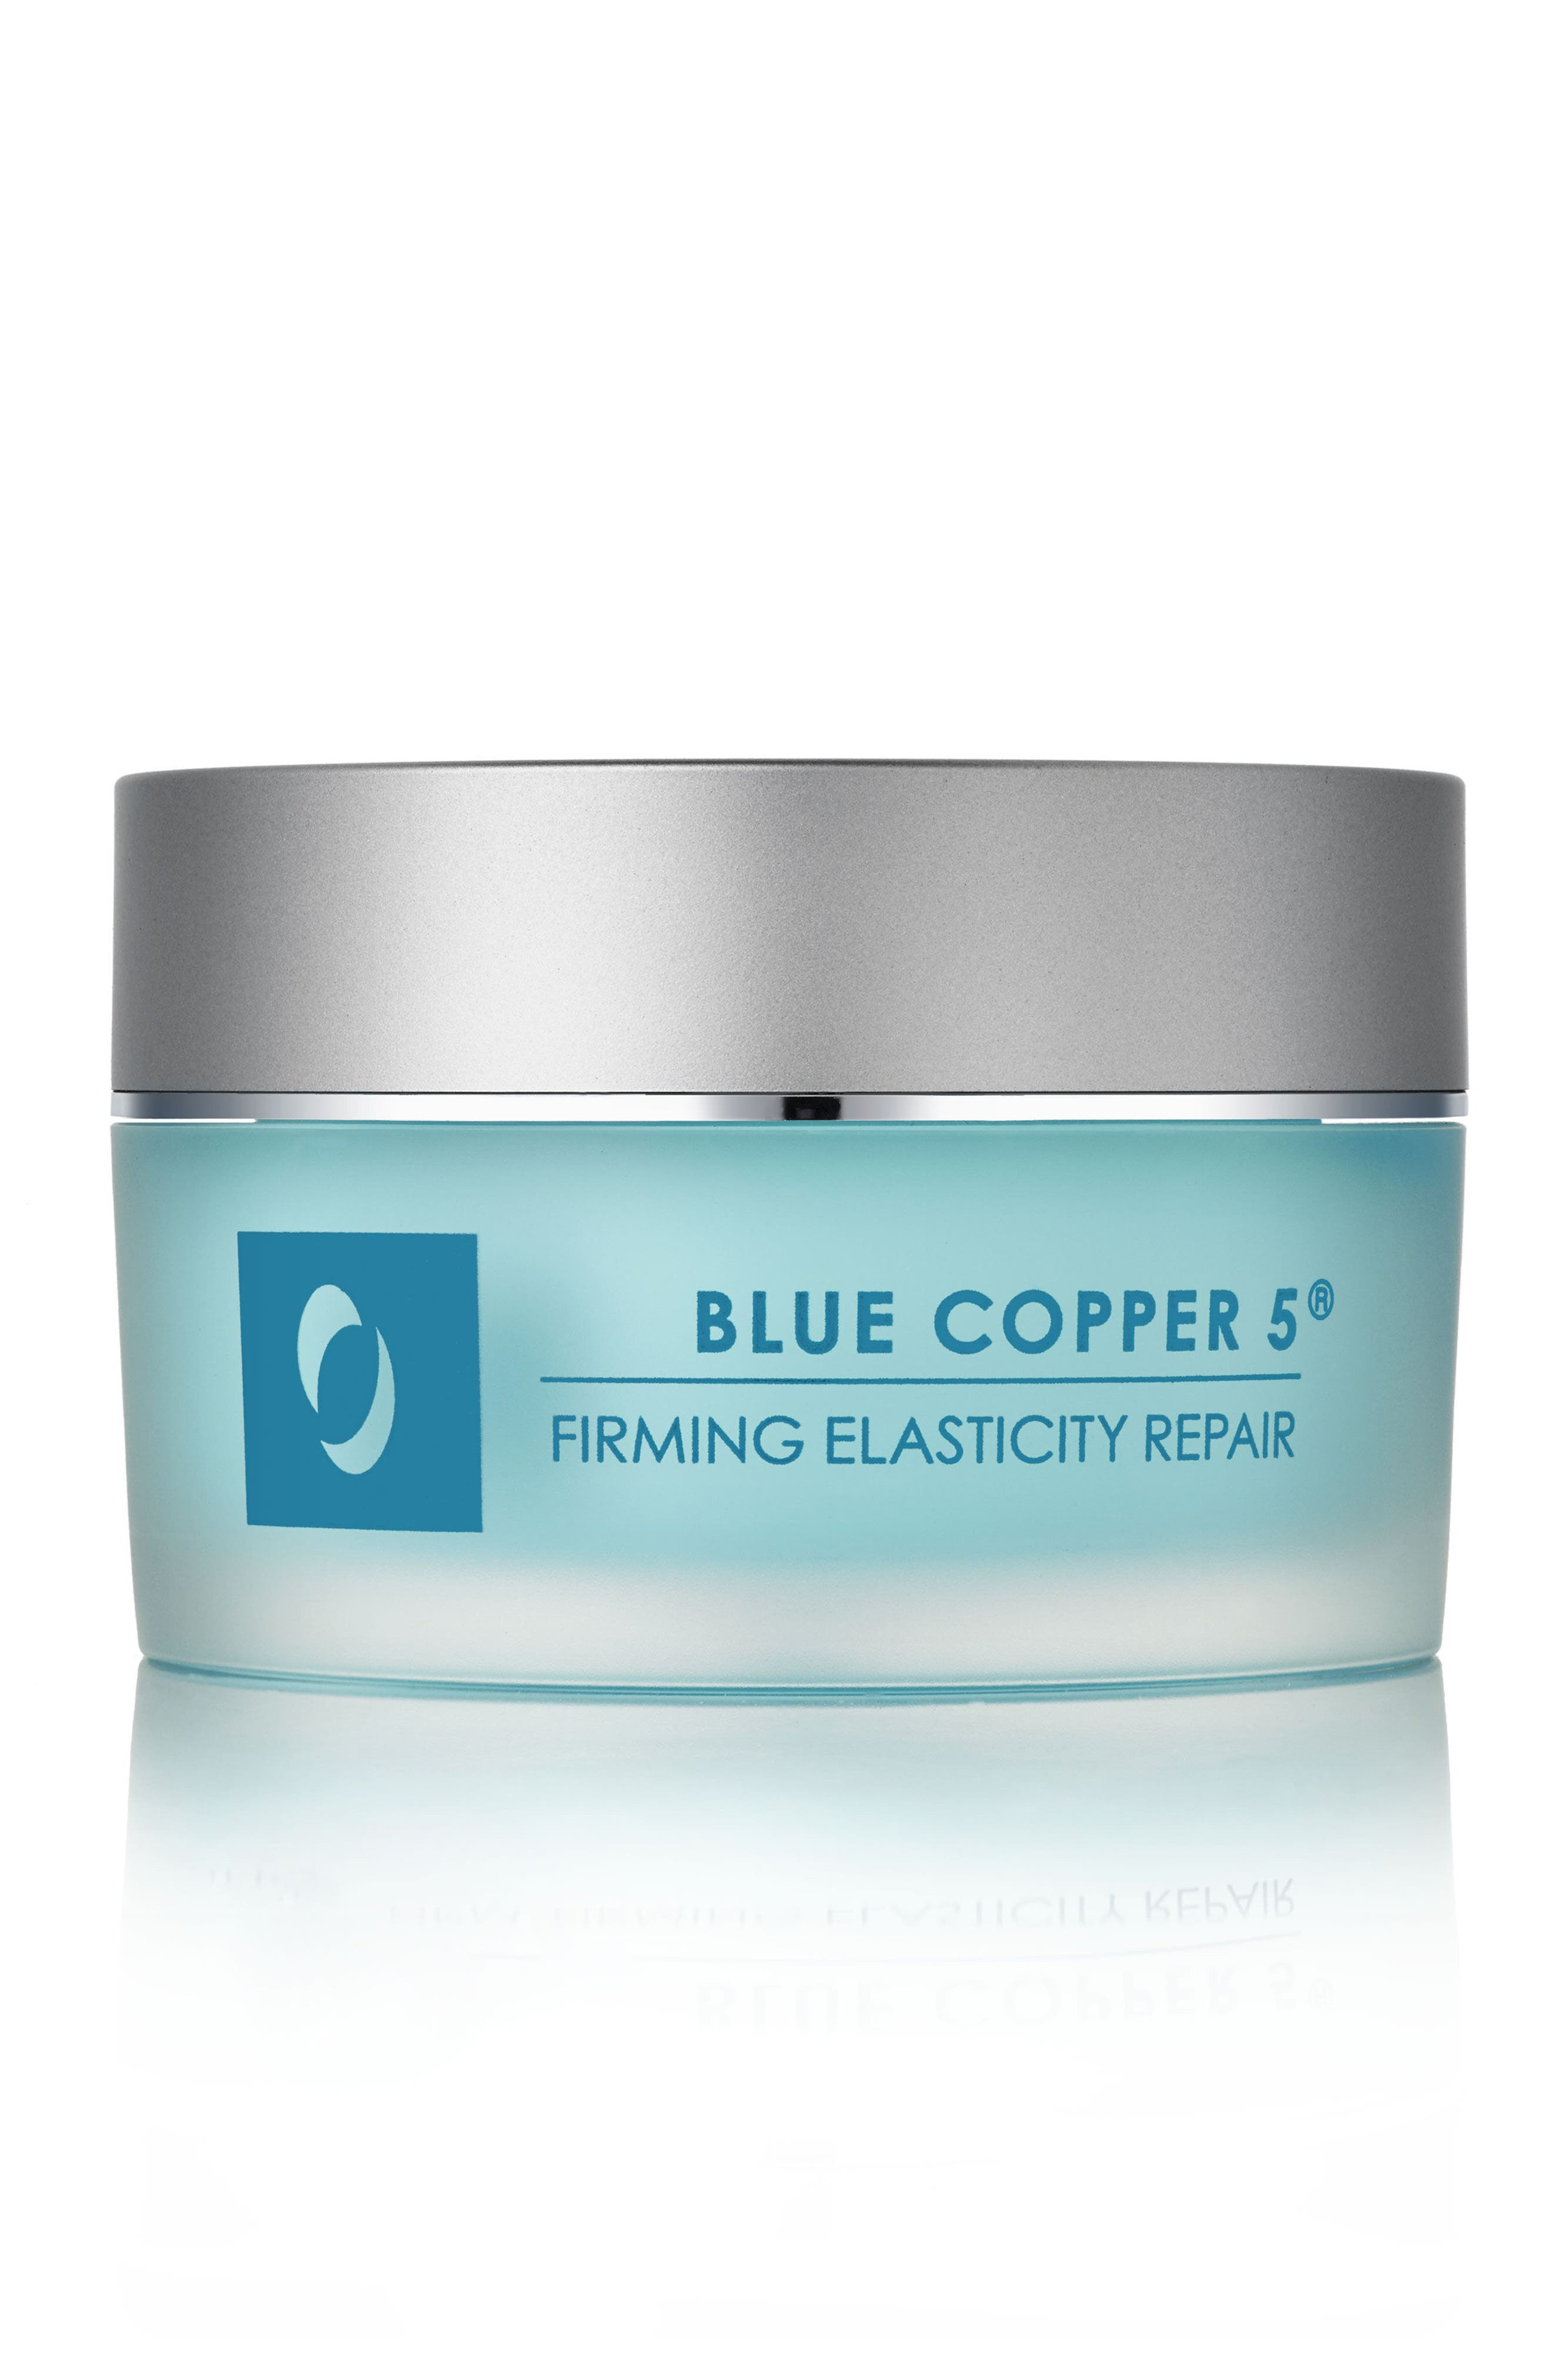 Main Image - Osmotics Cosmeceuticals Blue Copper 5 Firming Elasticity Repair ($450 Value)